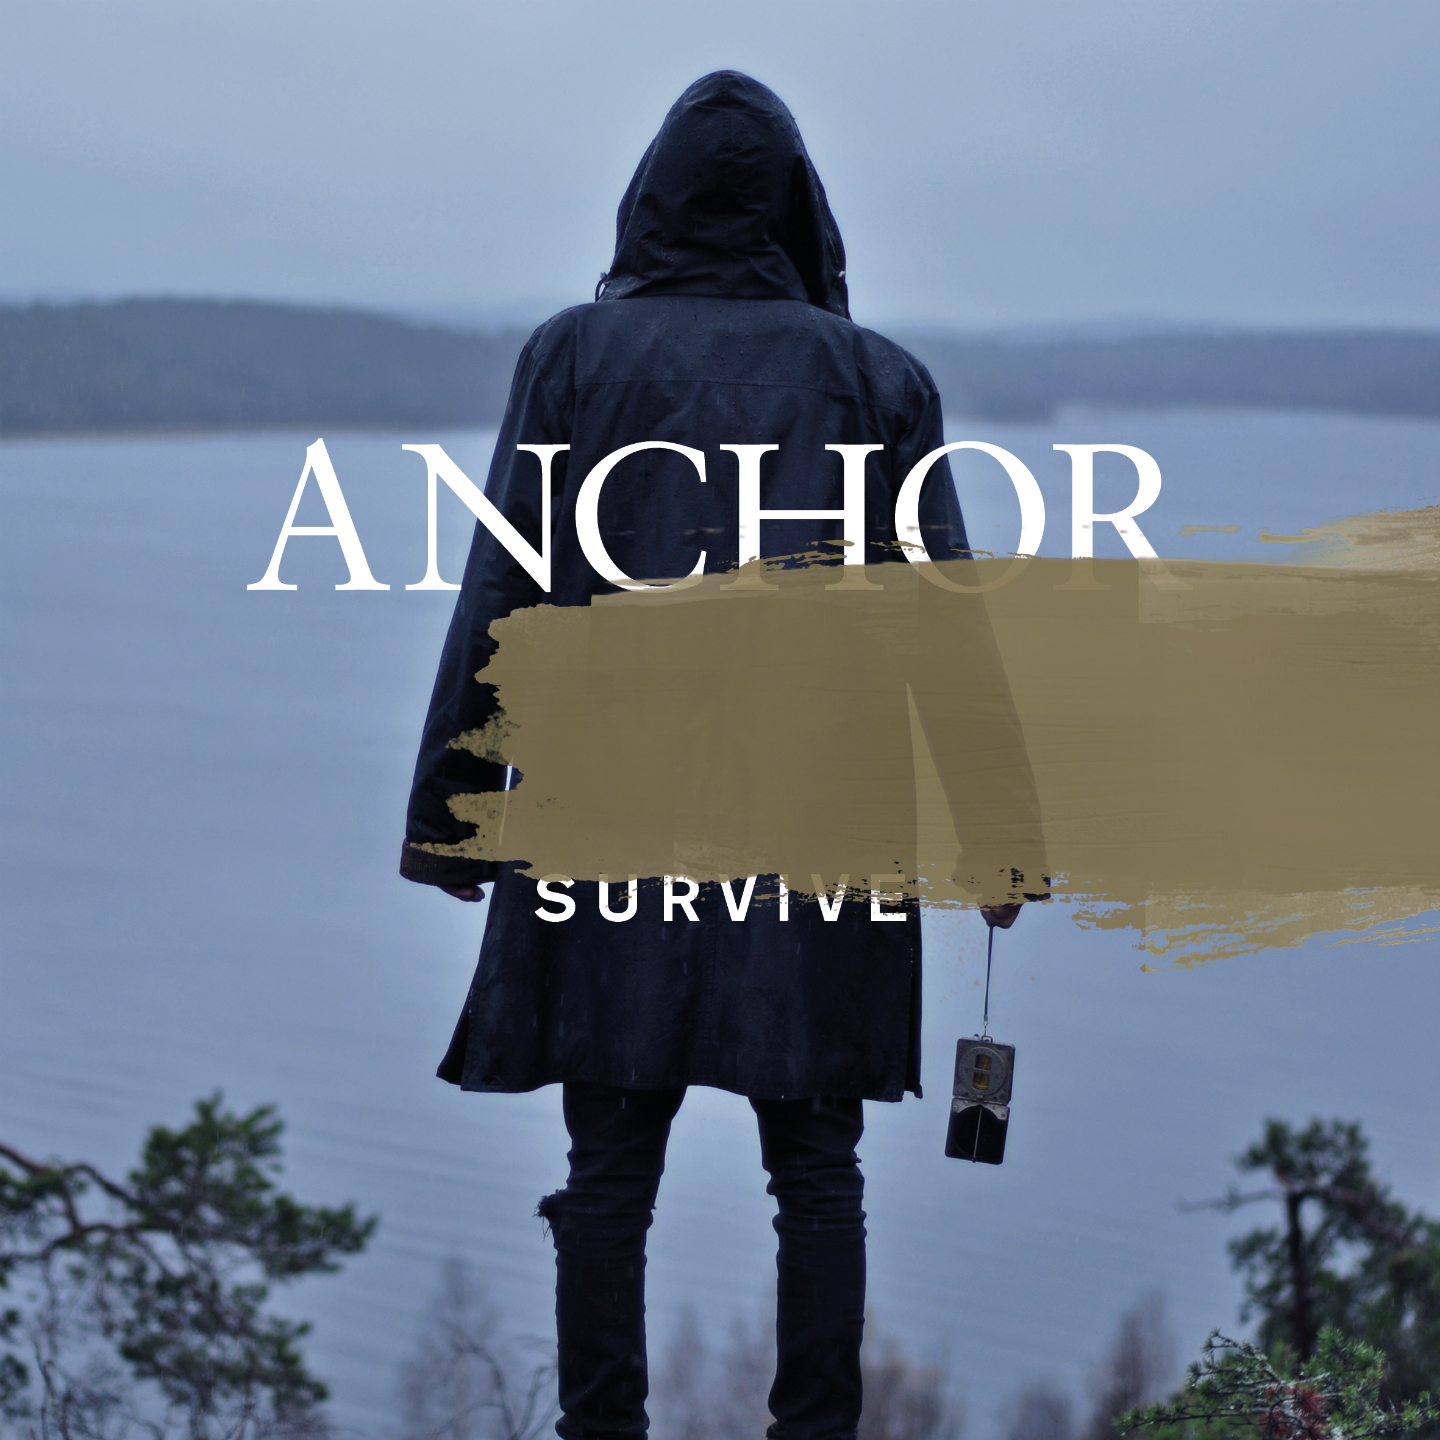 ANCHOR premiere video for SURVIVE